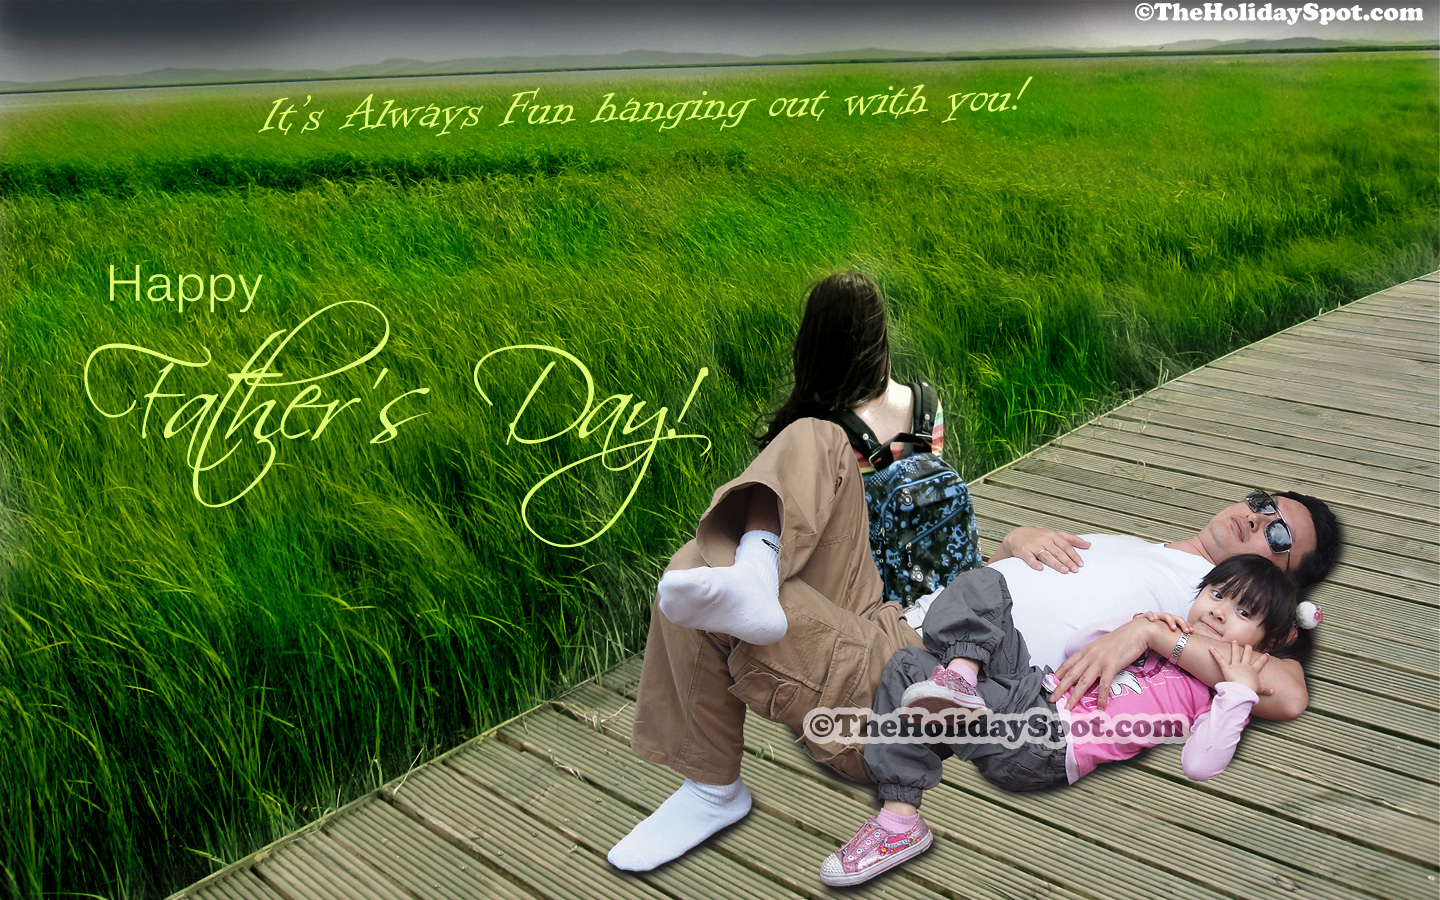 Father Daughter Quotes Wallpapers Fathers Day Wallpapers From Theholidayspot